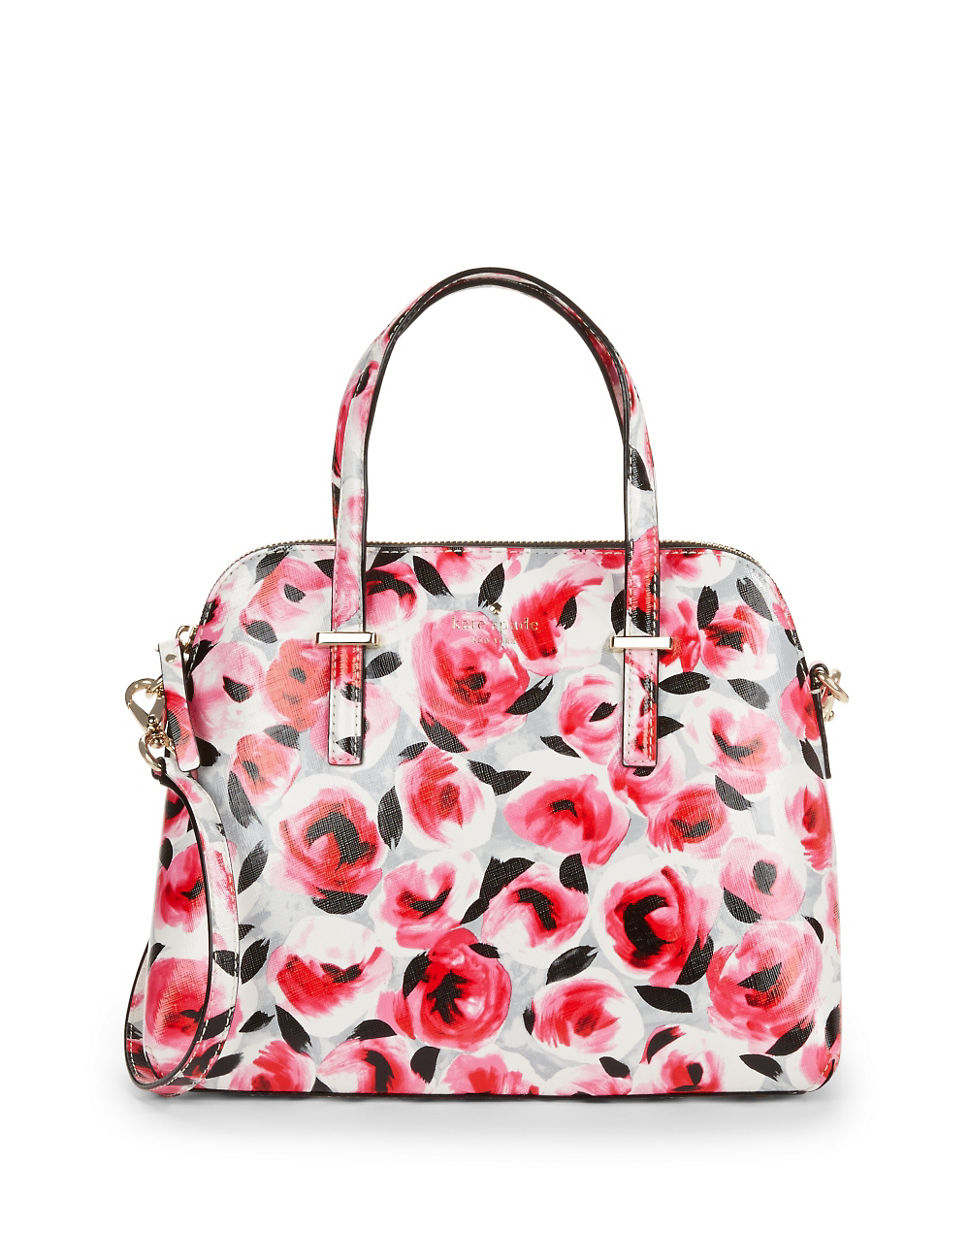 Kate Spade New York Maise Floral Dome Bag In Red | Lyst